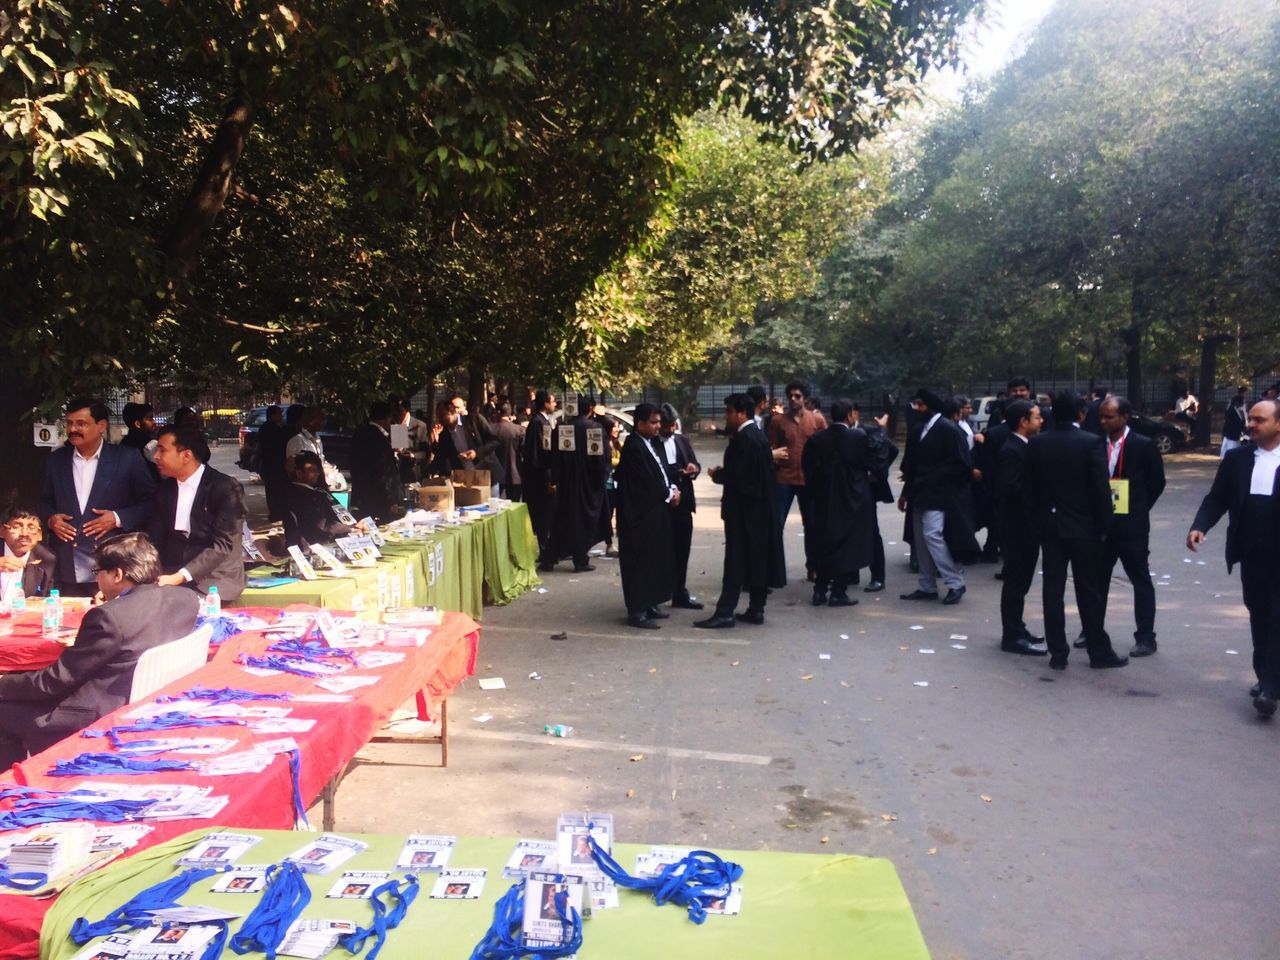 Election campaigning at Delhi High Court Large Group Of People Celebration Election Campaign Election 2016 Election Day Life Events Lawyers Indian Lawyers